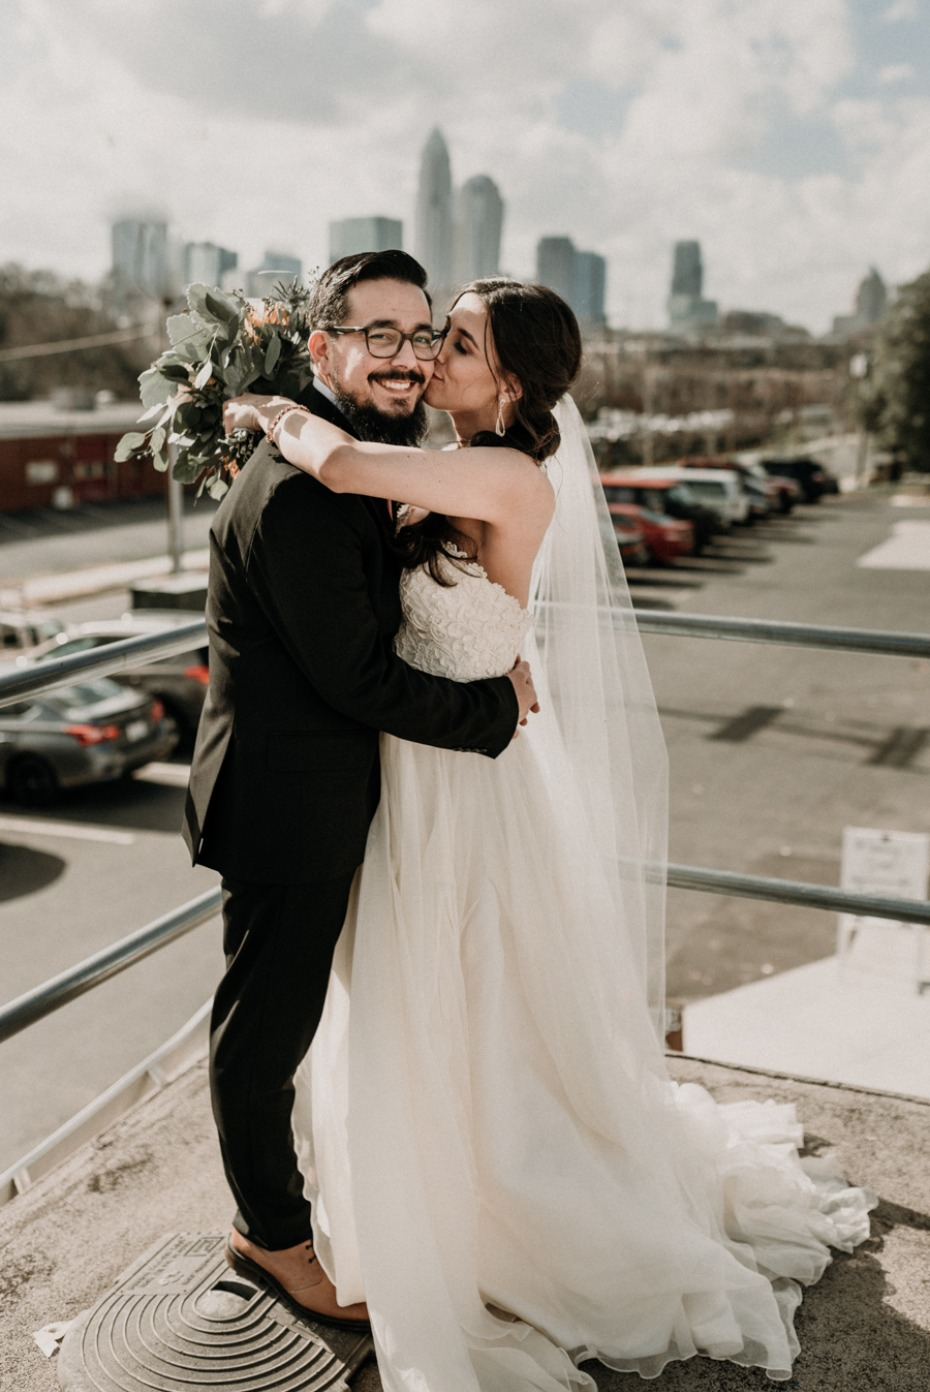 sweet rooftop wedding photo idea